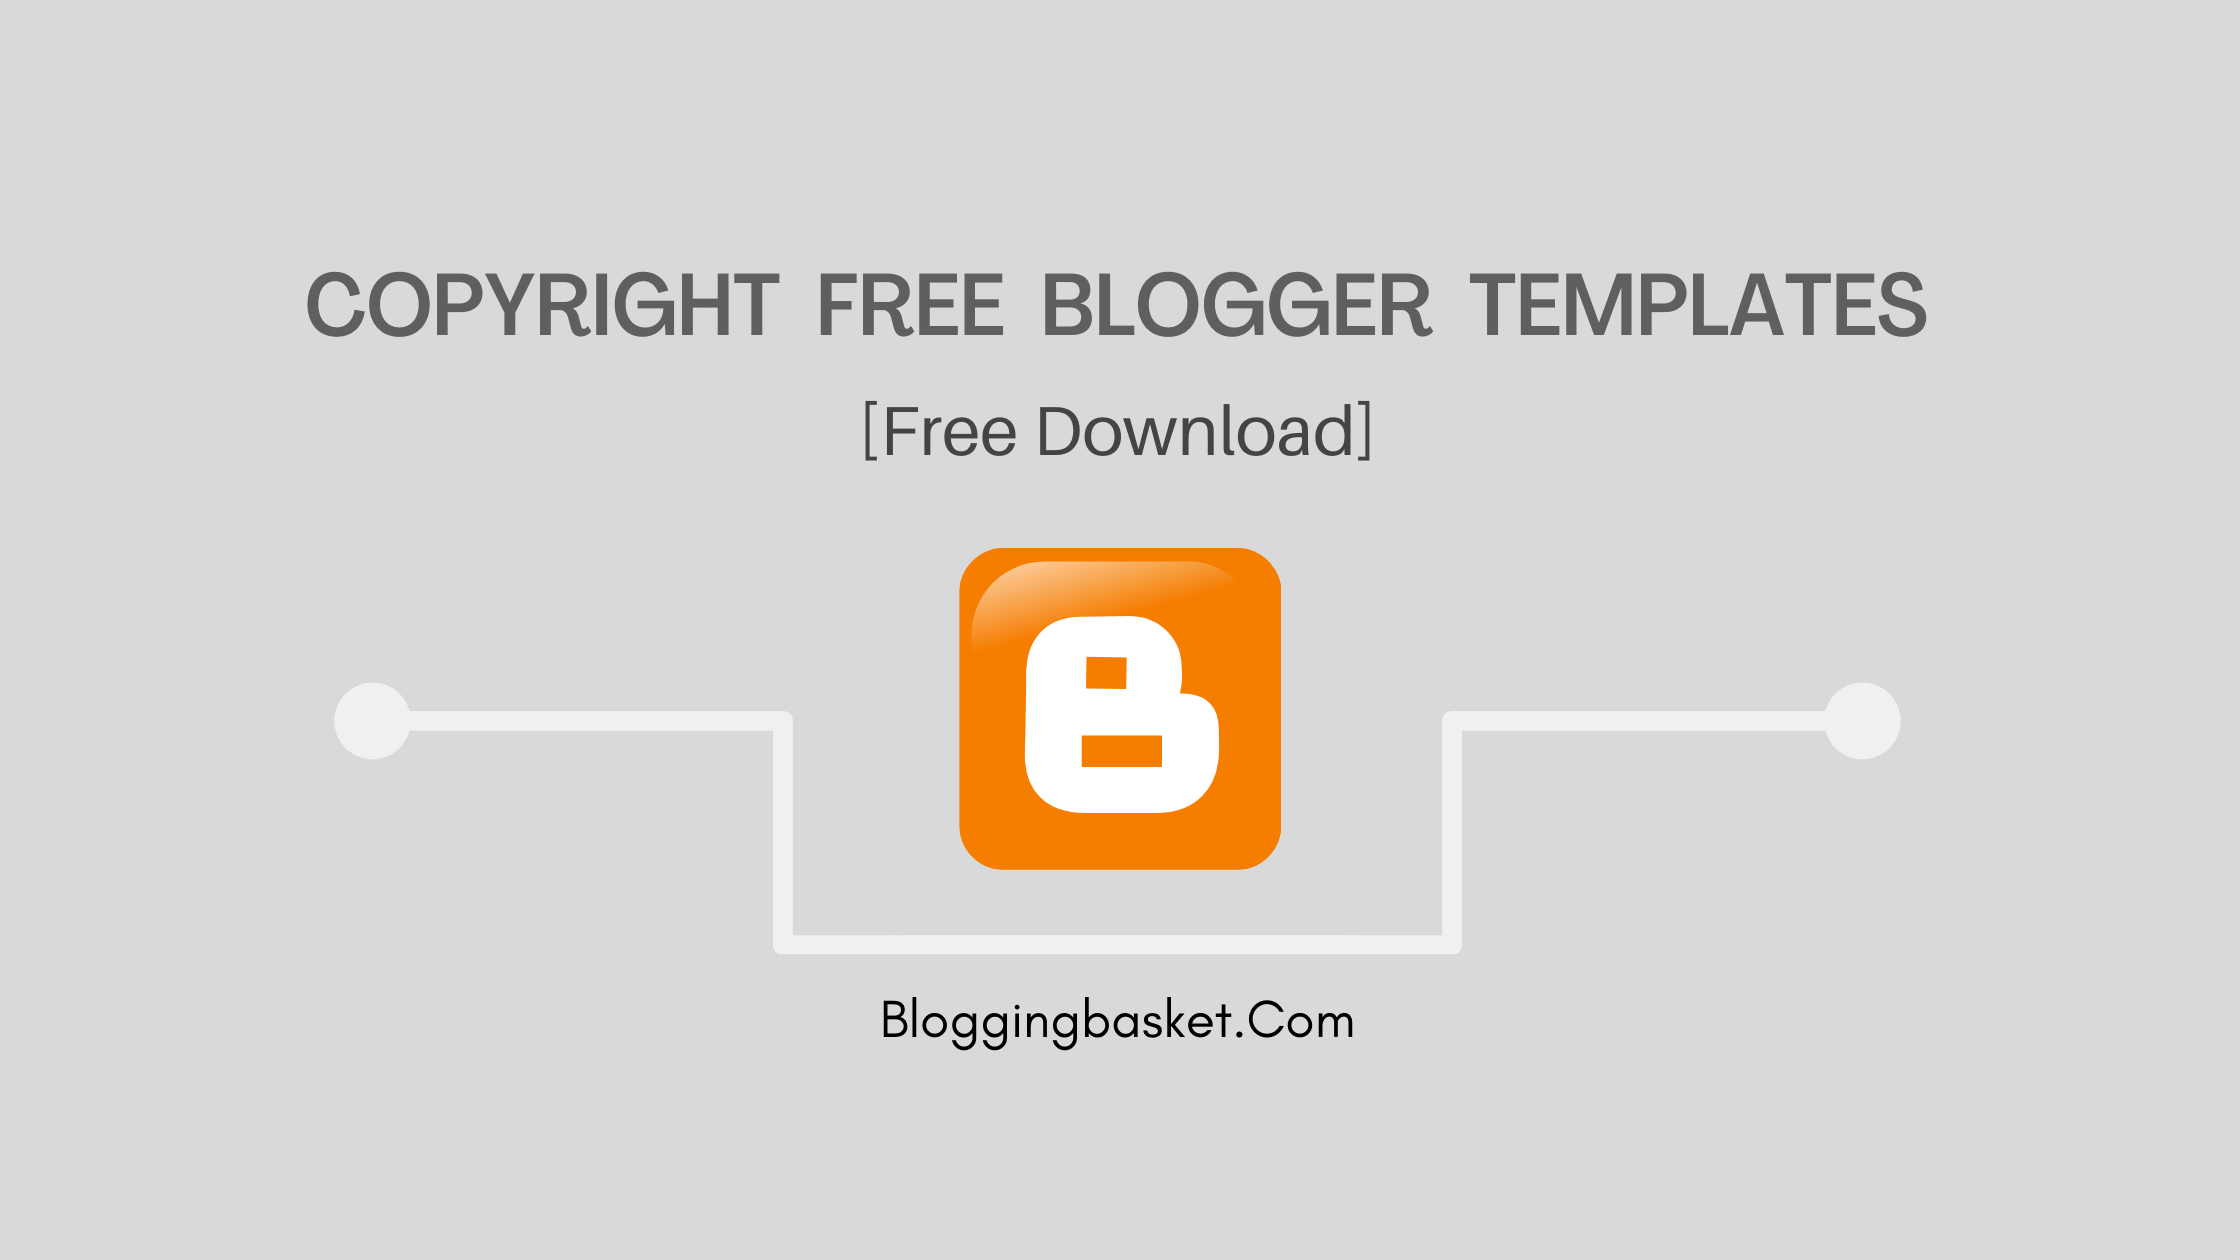 free blogger templates without copyright